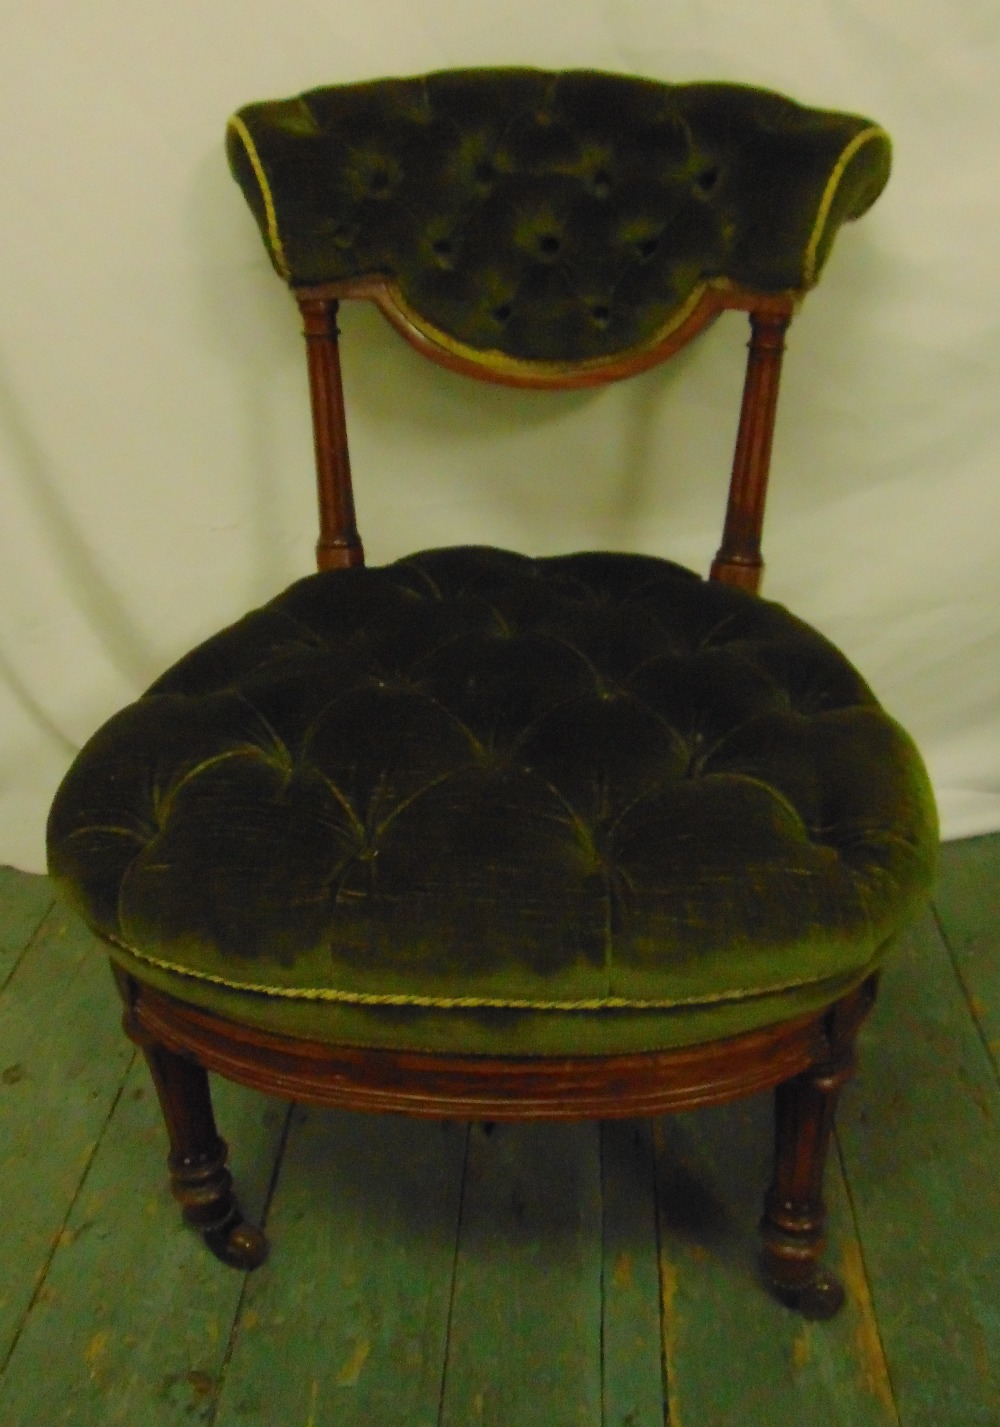 Lot 32 - A Victorian mahogany button back upholstered nursing chair on turned cylindrical legs, 67 x 48 x